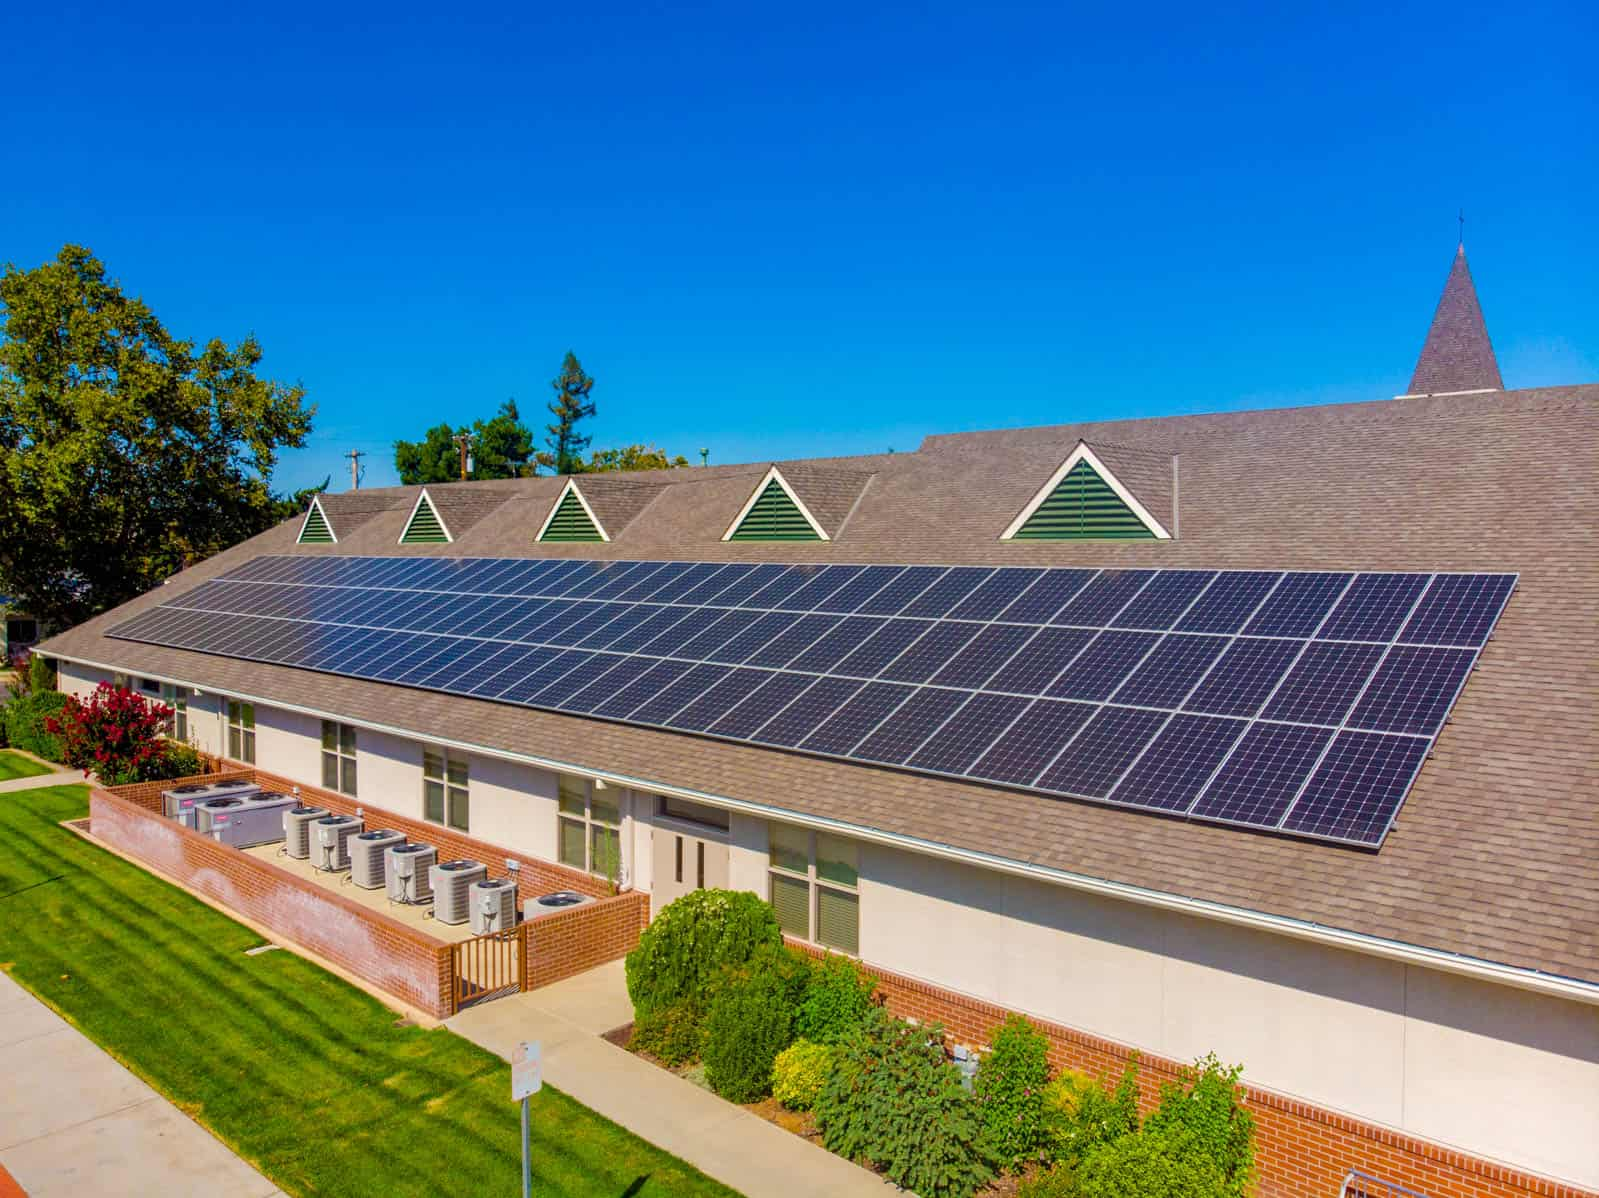 low altitutde drone photo of solar panel installation on church rooftop in Ripon, California